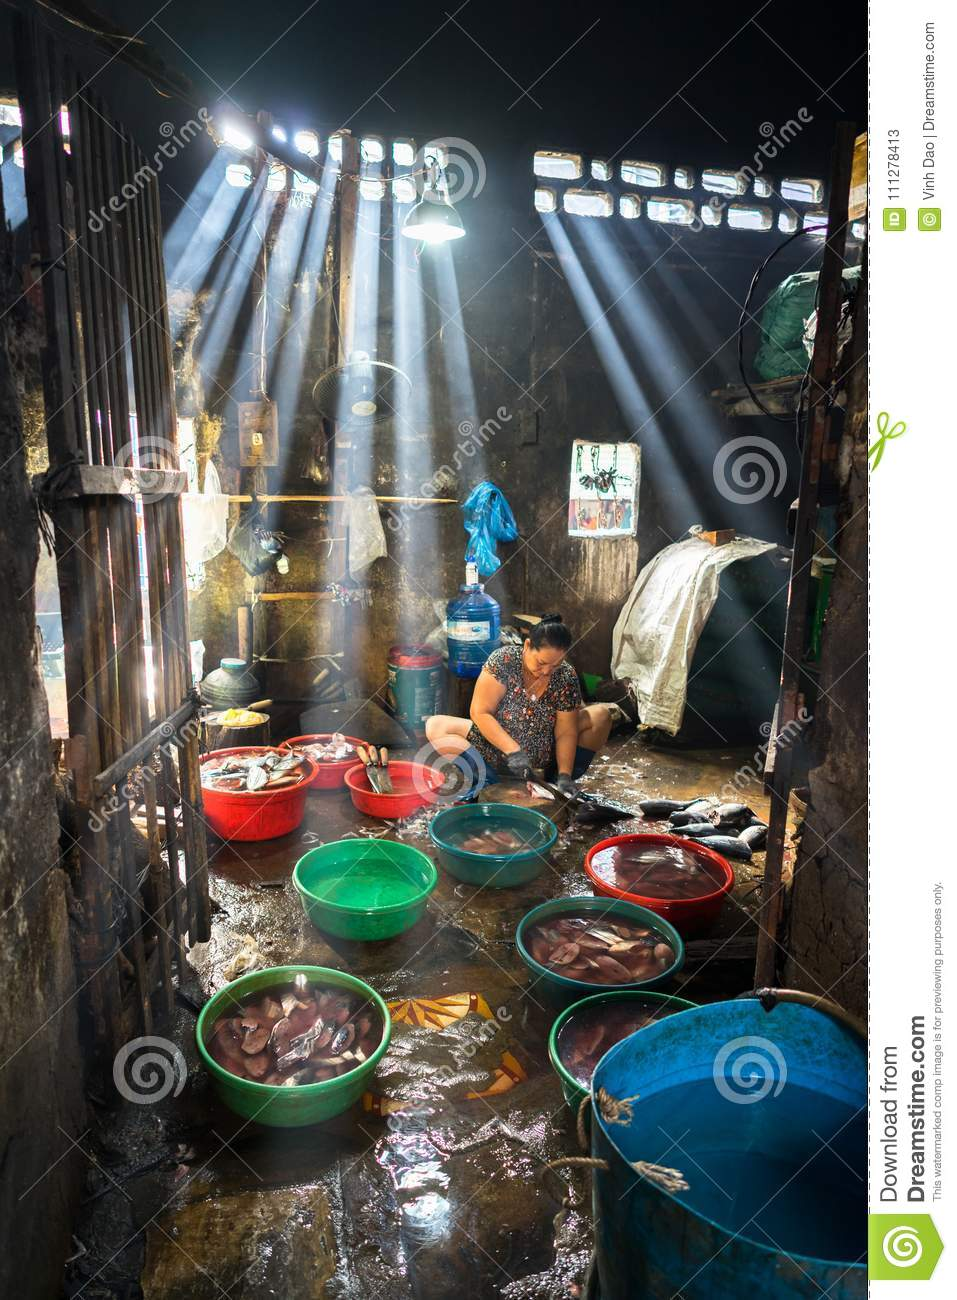 Quy Nhon, Vietnam - Oct 22, 2016: Seafood processing at fish market in Quy Nhon, south Vietnam